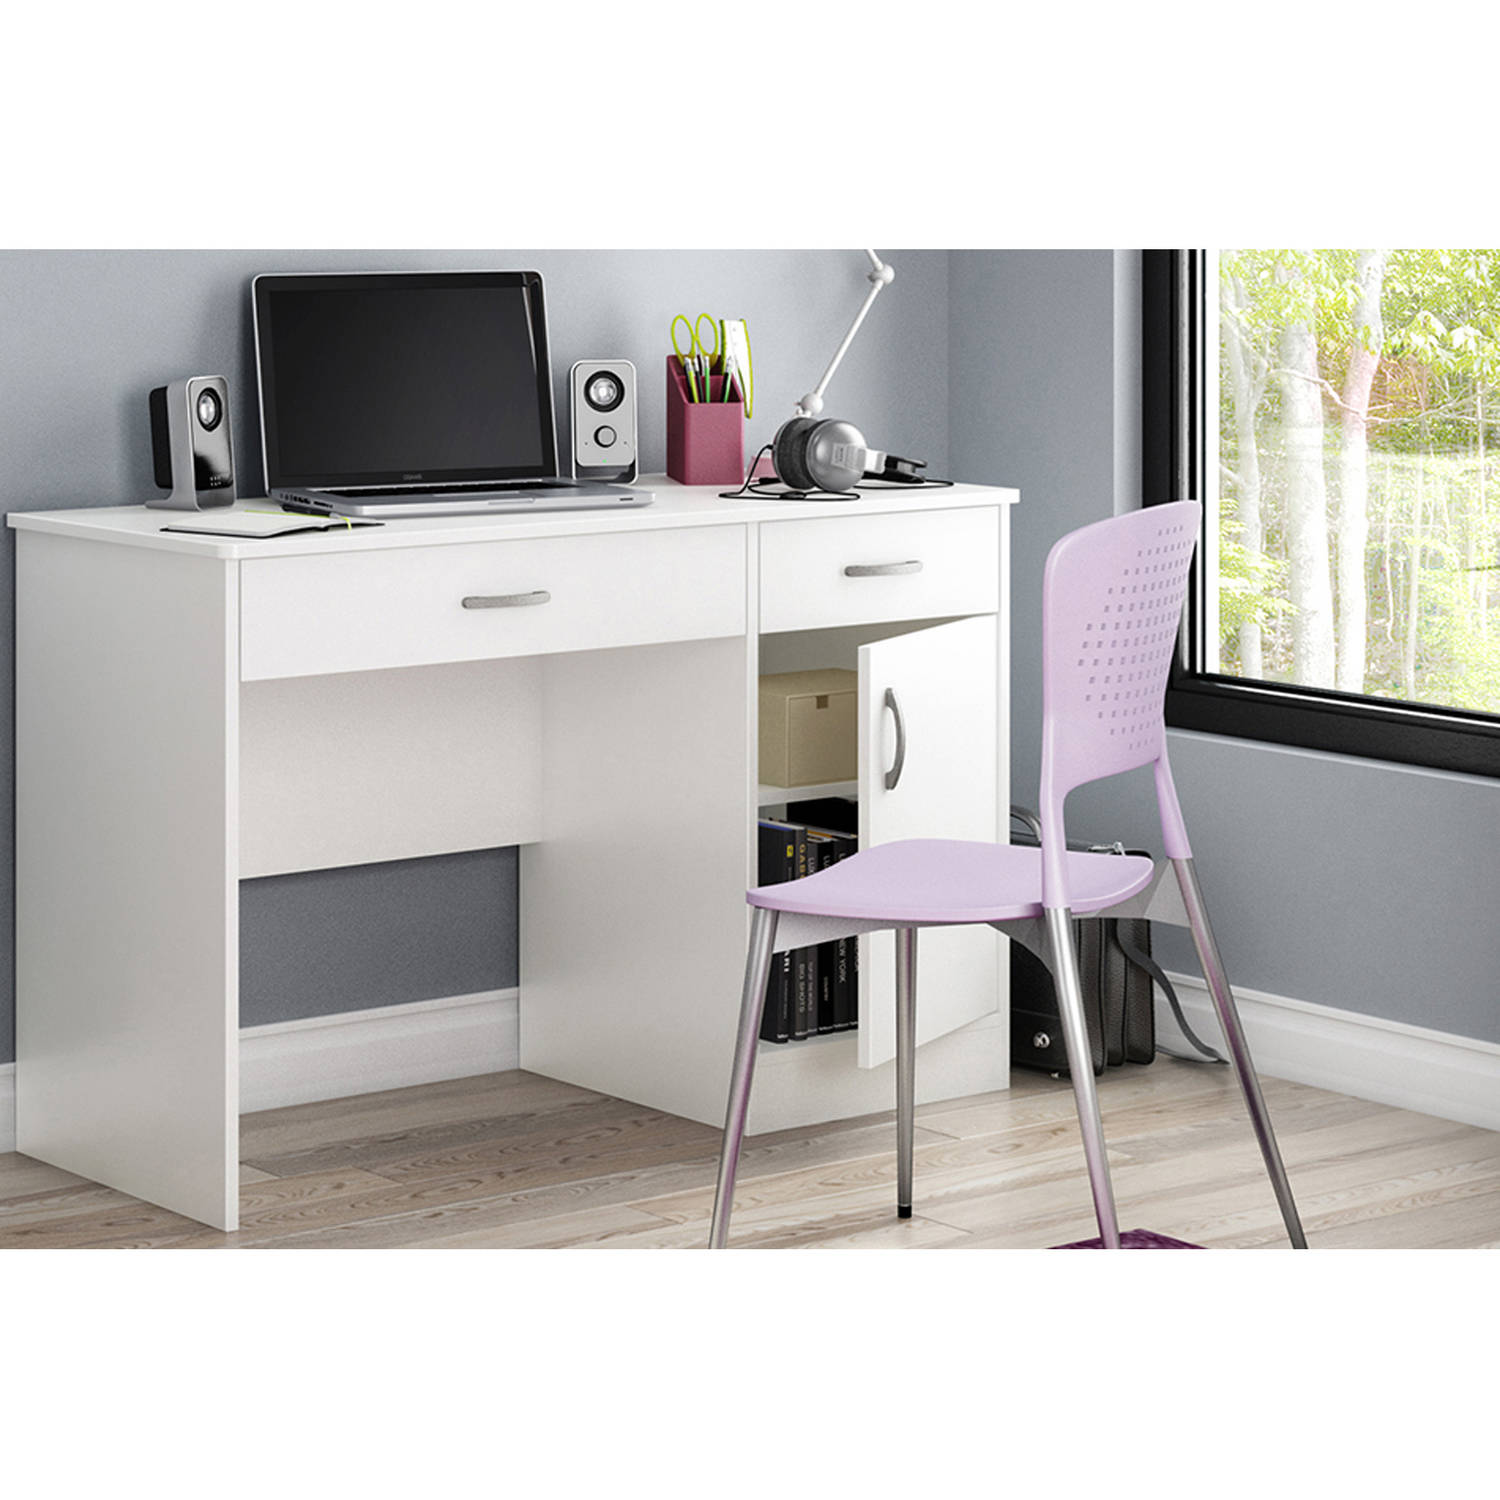 Awesome South Shore Smart Basics Small Work Desk, Multiple Finishes